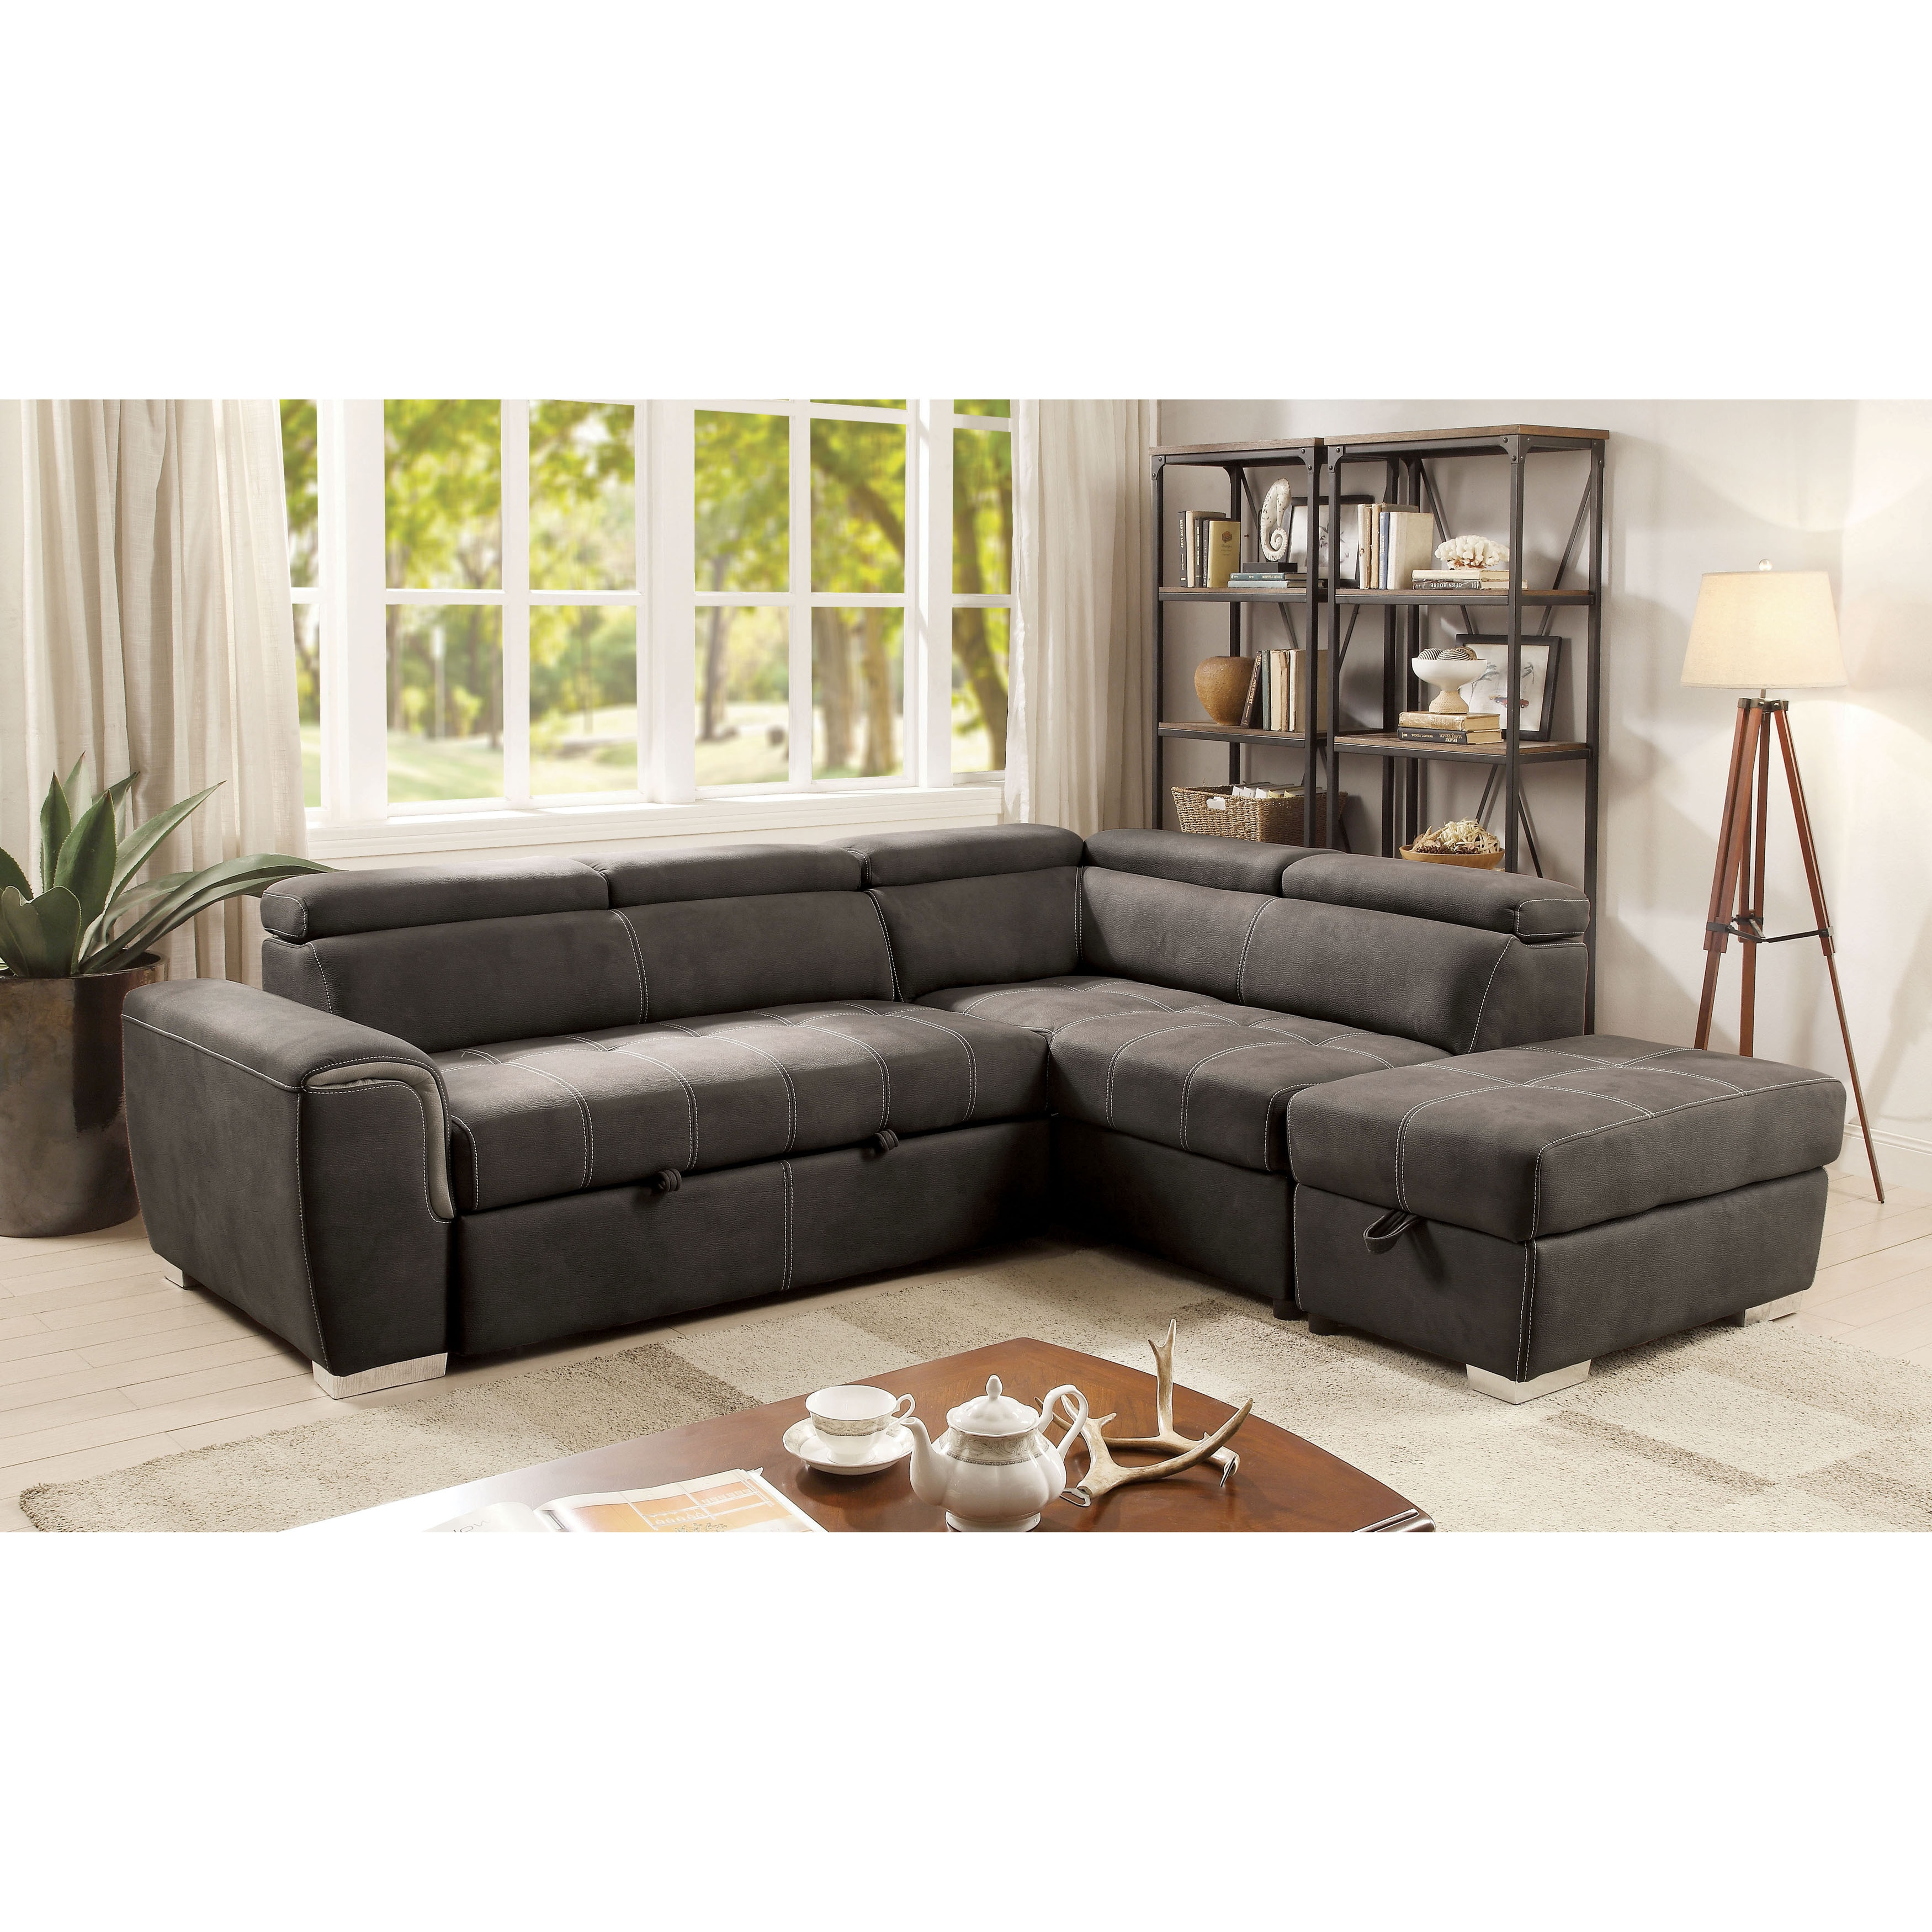 Furniture of America Henley Contemporary Upholstered Stor...